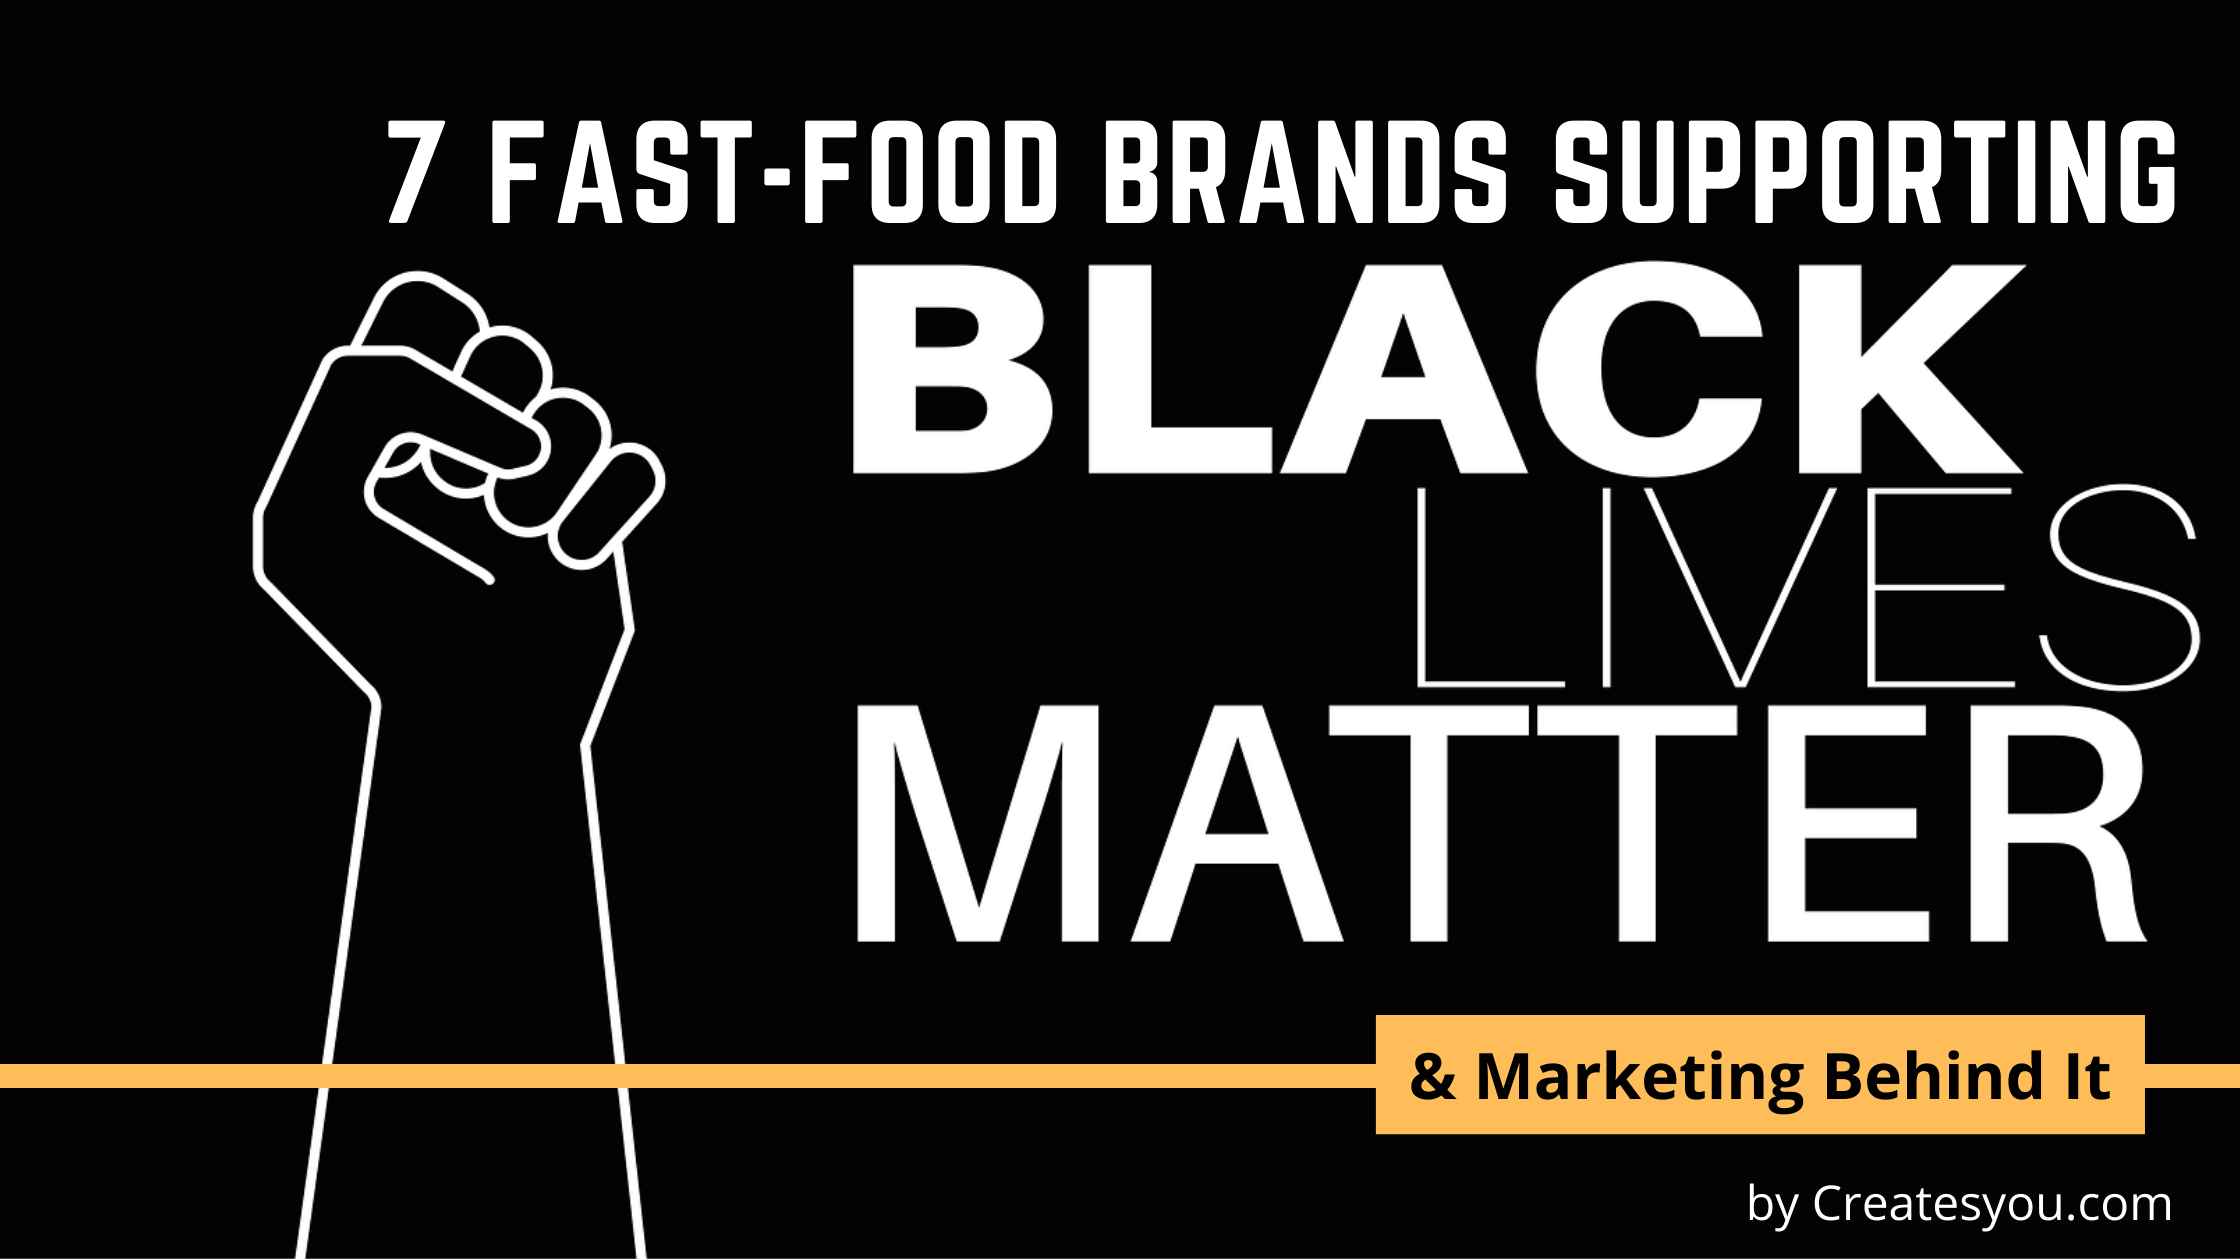 7 FAST-FOOD BRANDS SUPPORTING BLACK LIVES MATTER by Createsyou